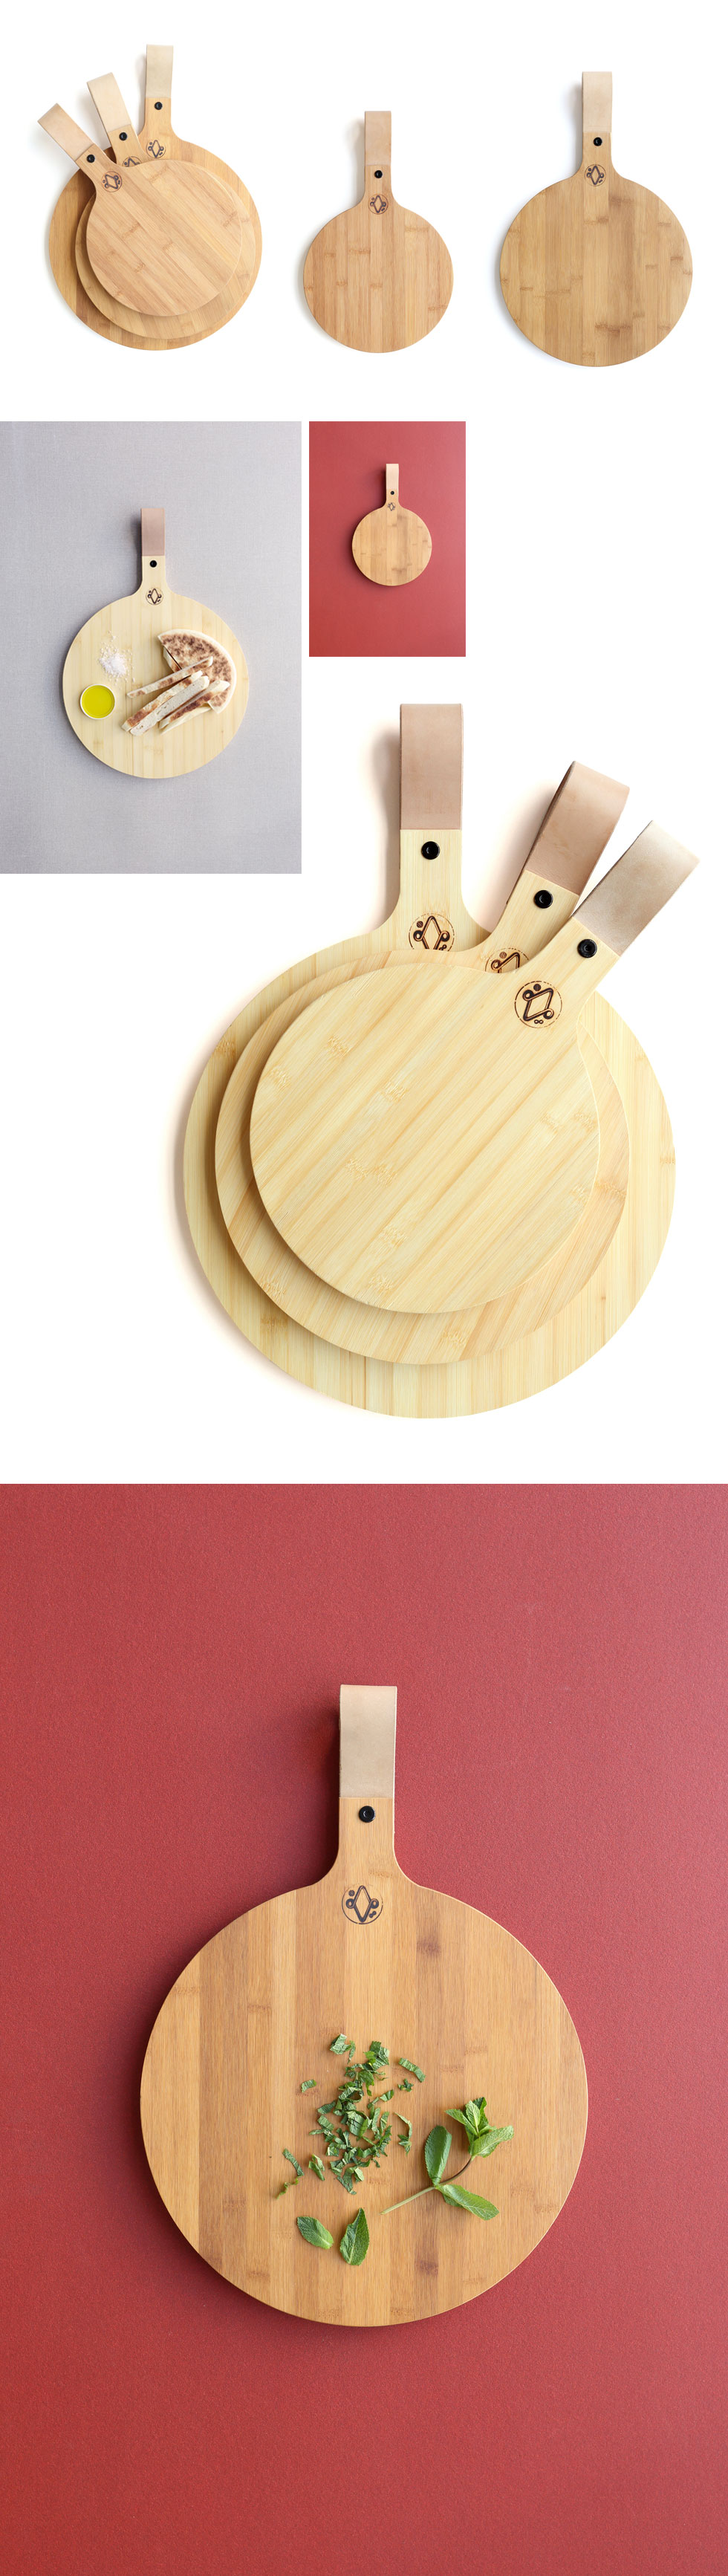 bread-paddle-overview